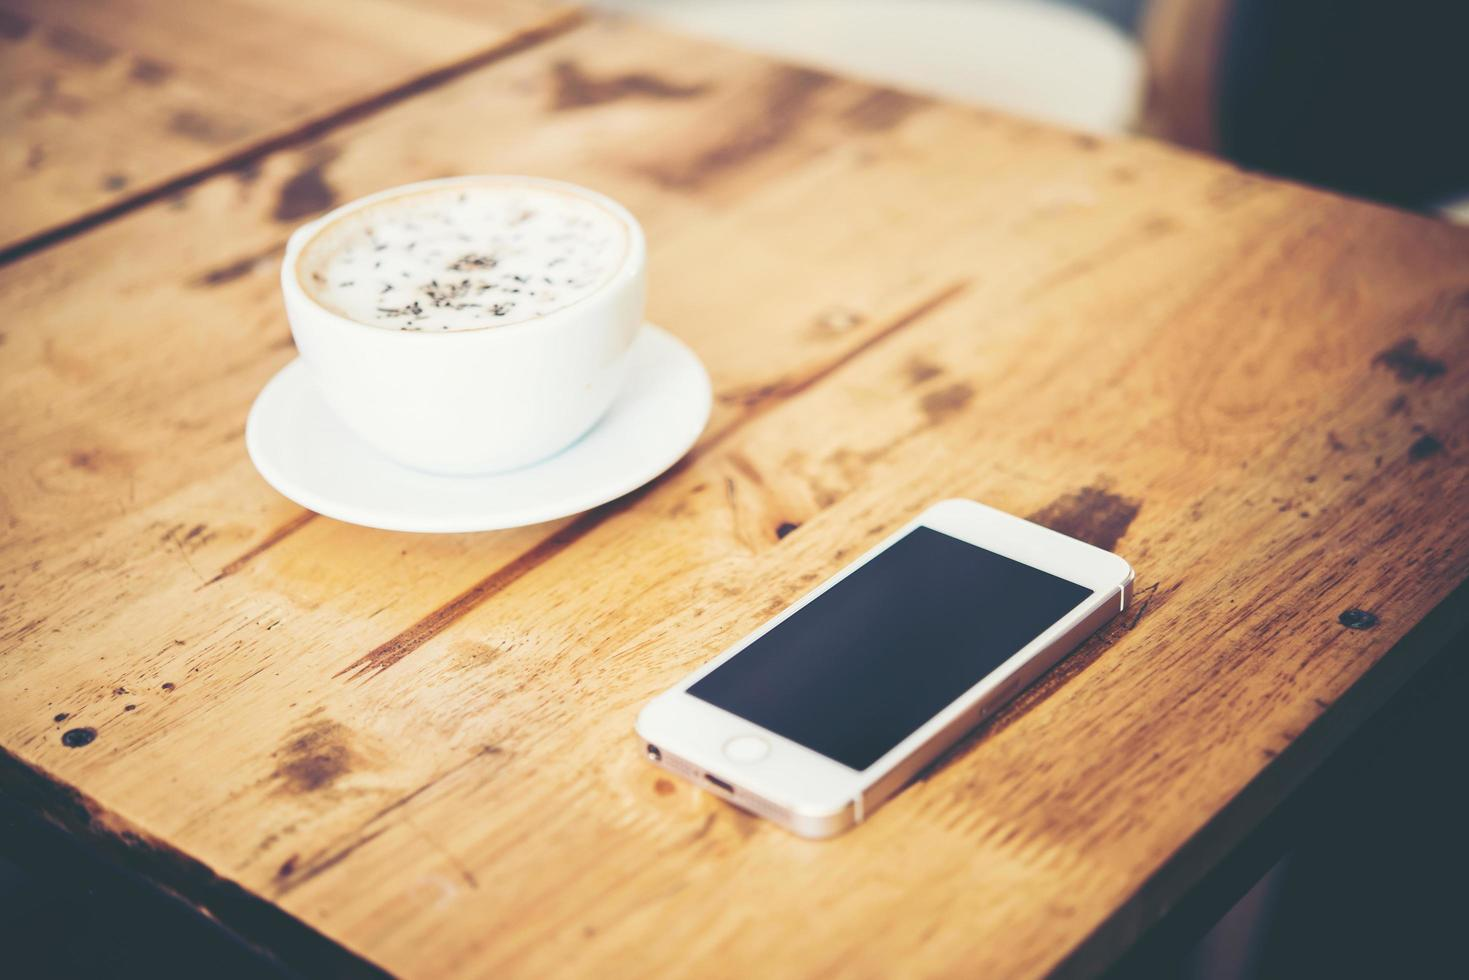 A cup of coffee and smartphone on wooden table in cafe photo